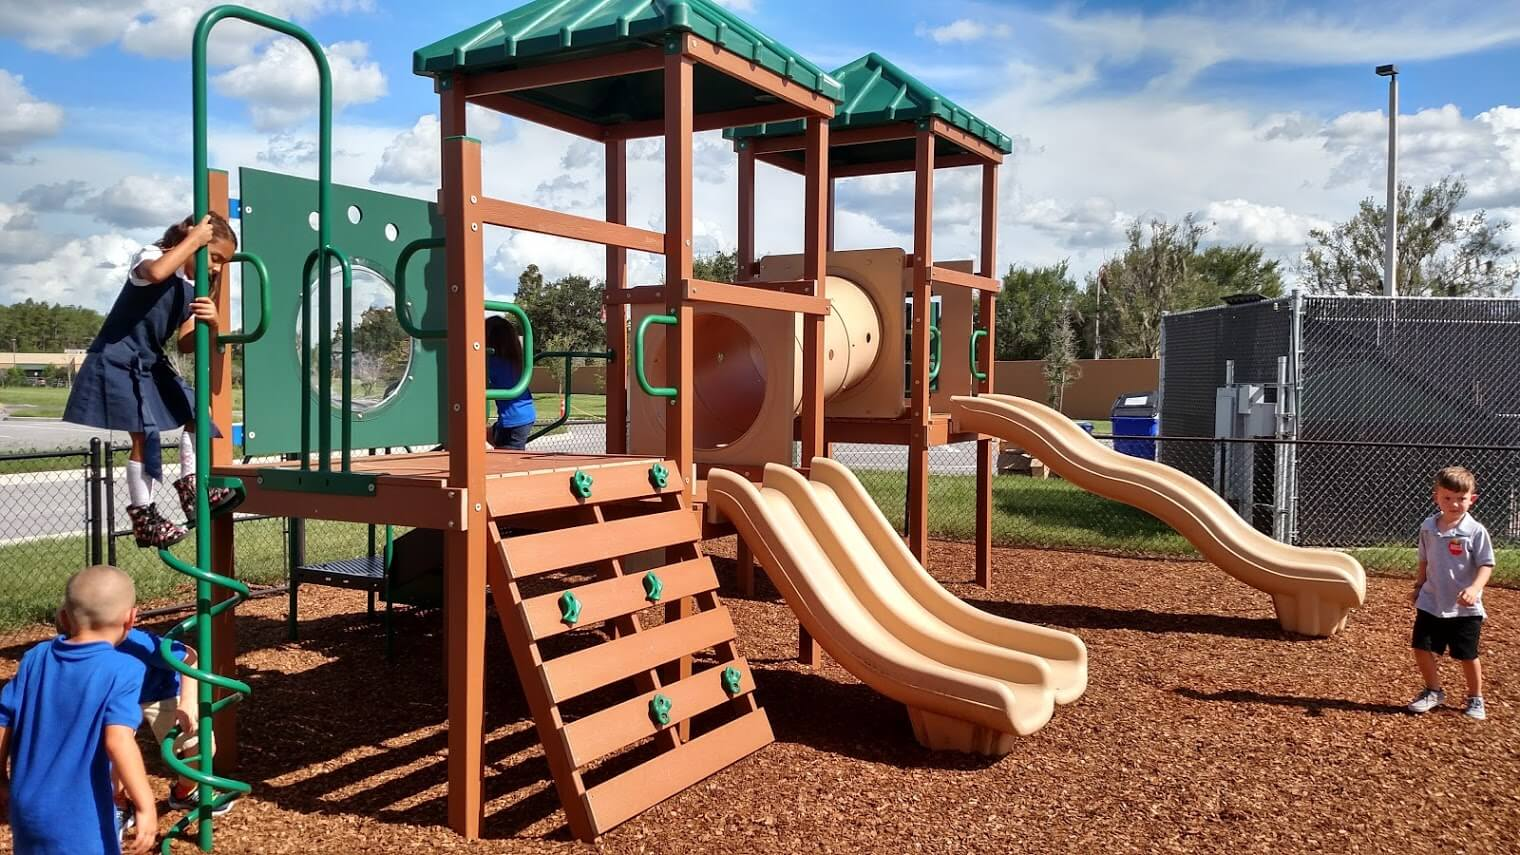 Commercial Playground Equipment Orlando 2019 Welcome To